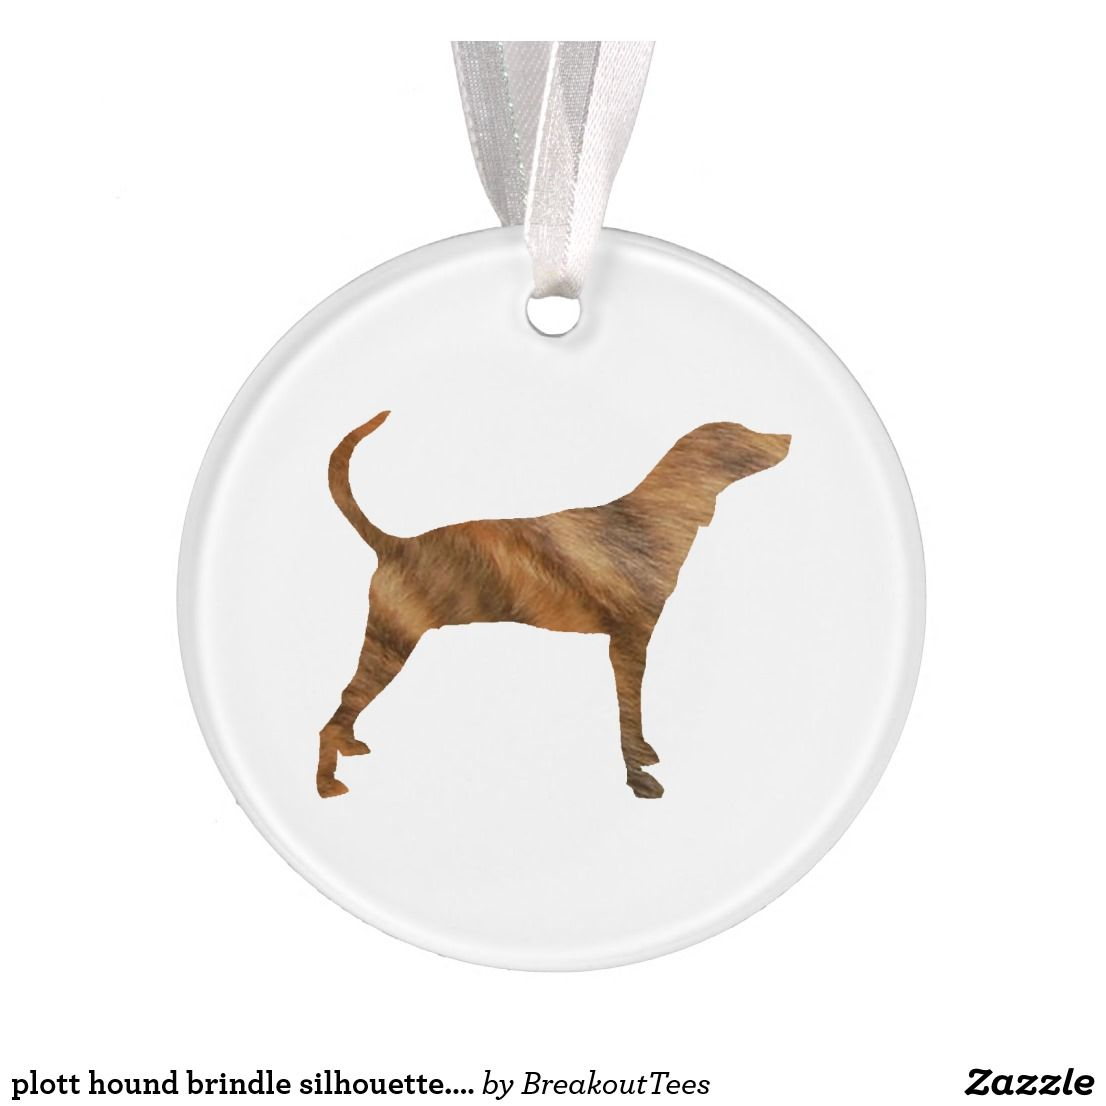 plott hound brindle silhouette.png ornament | Zazzle.com #plotthound